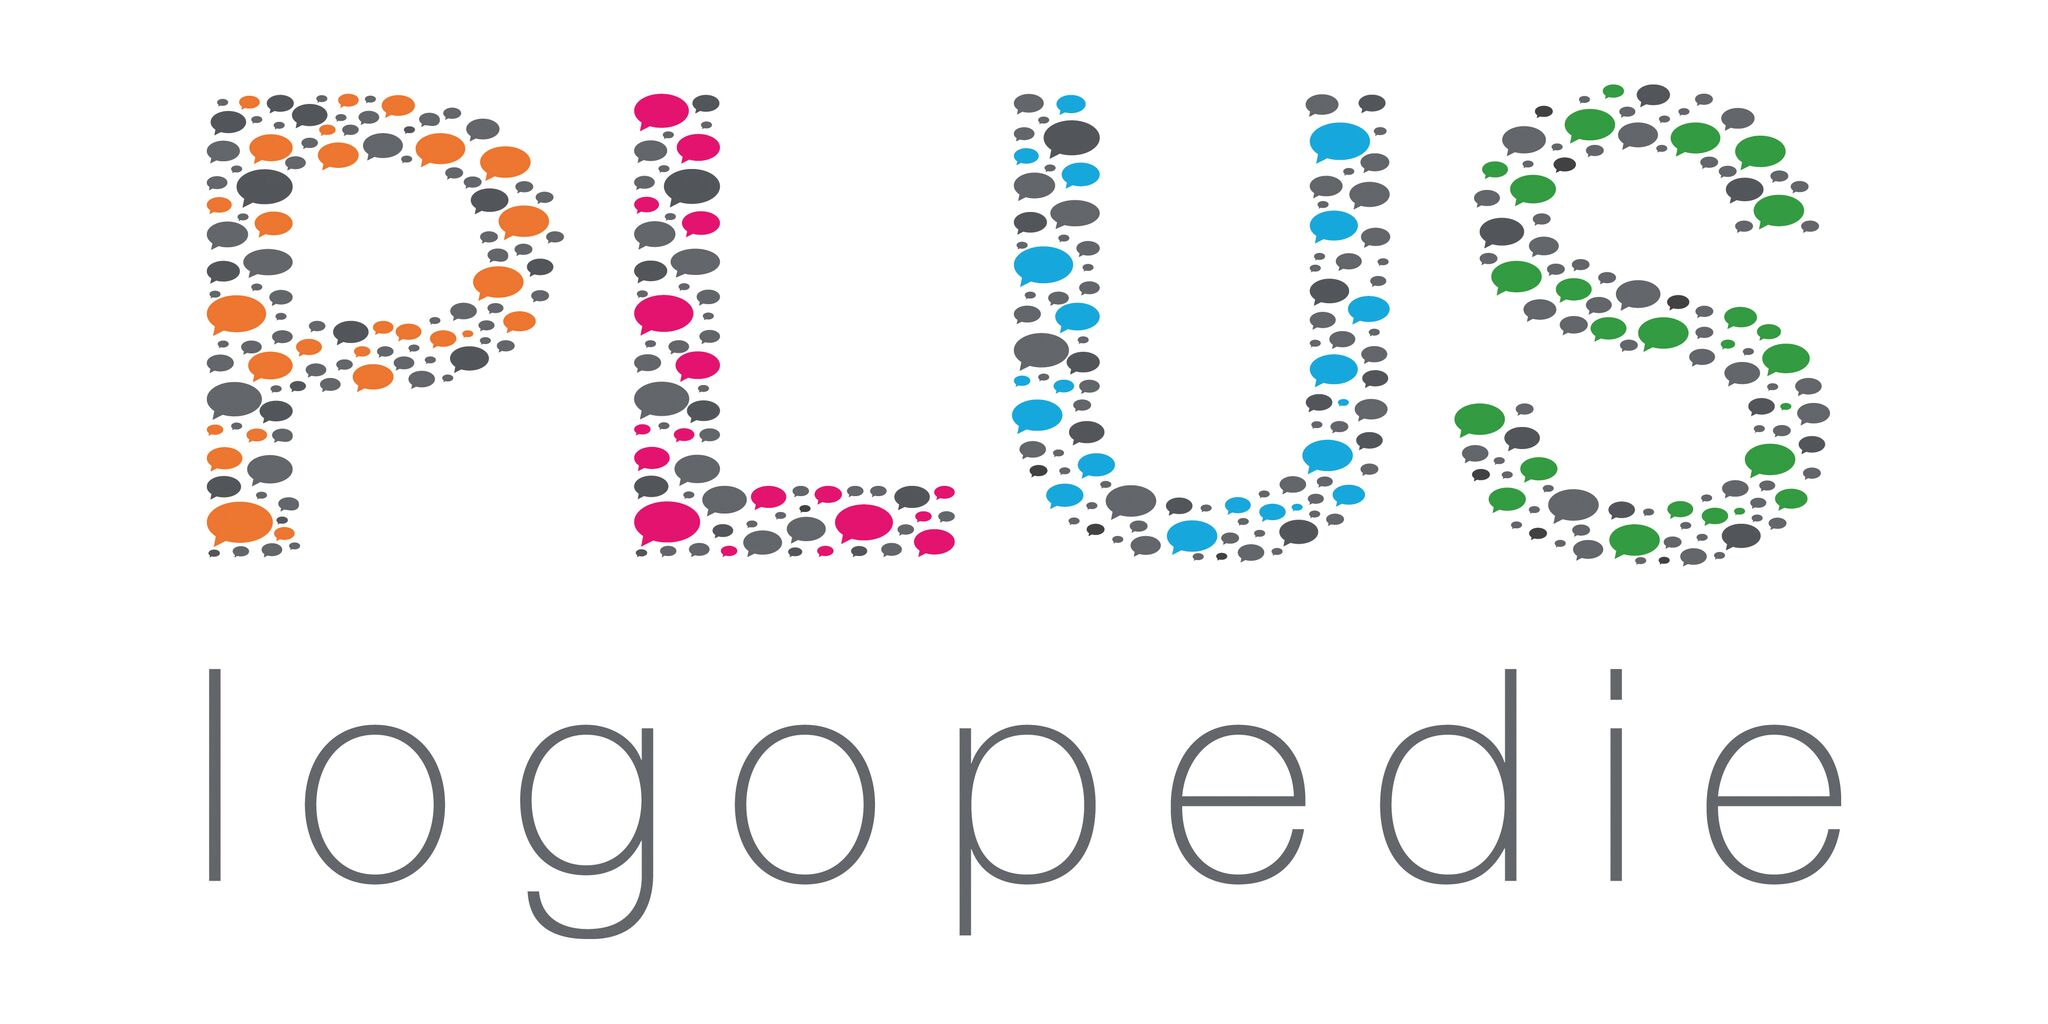 Plus Logopedie